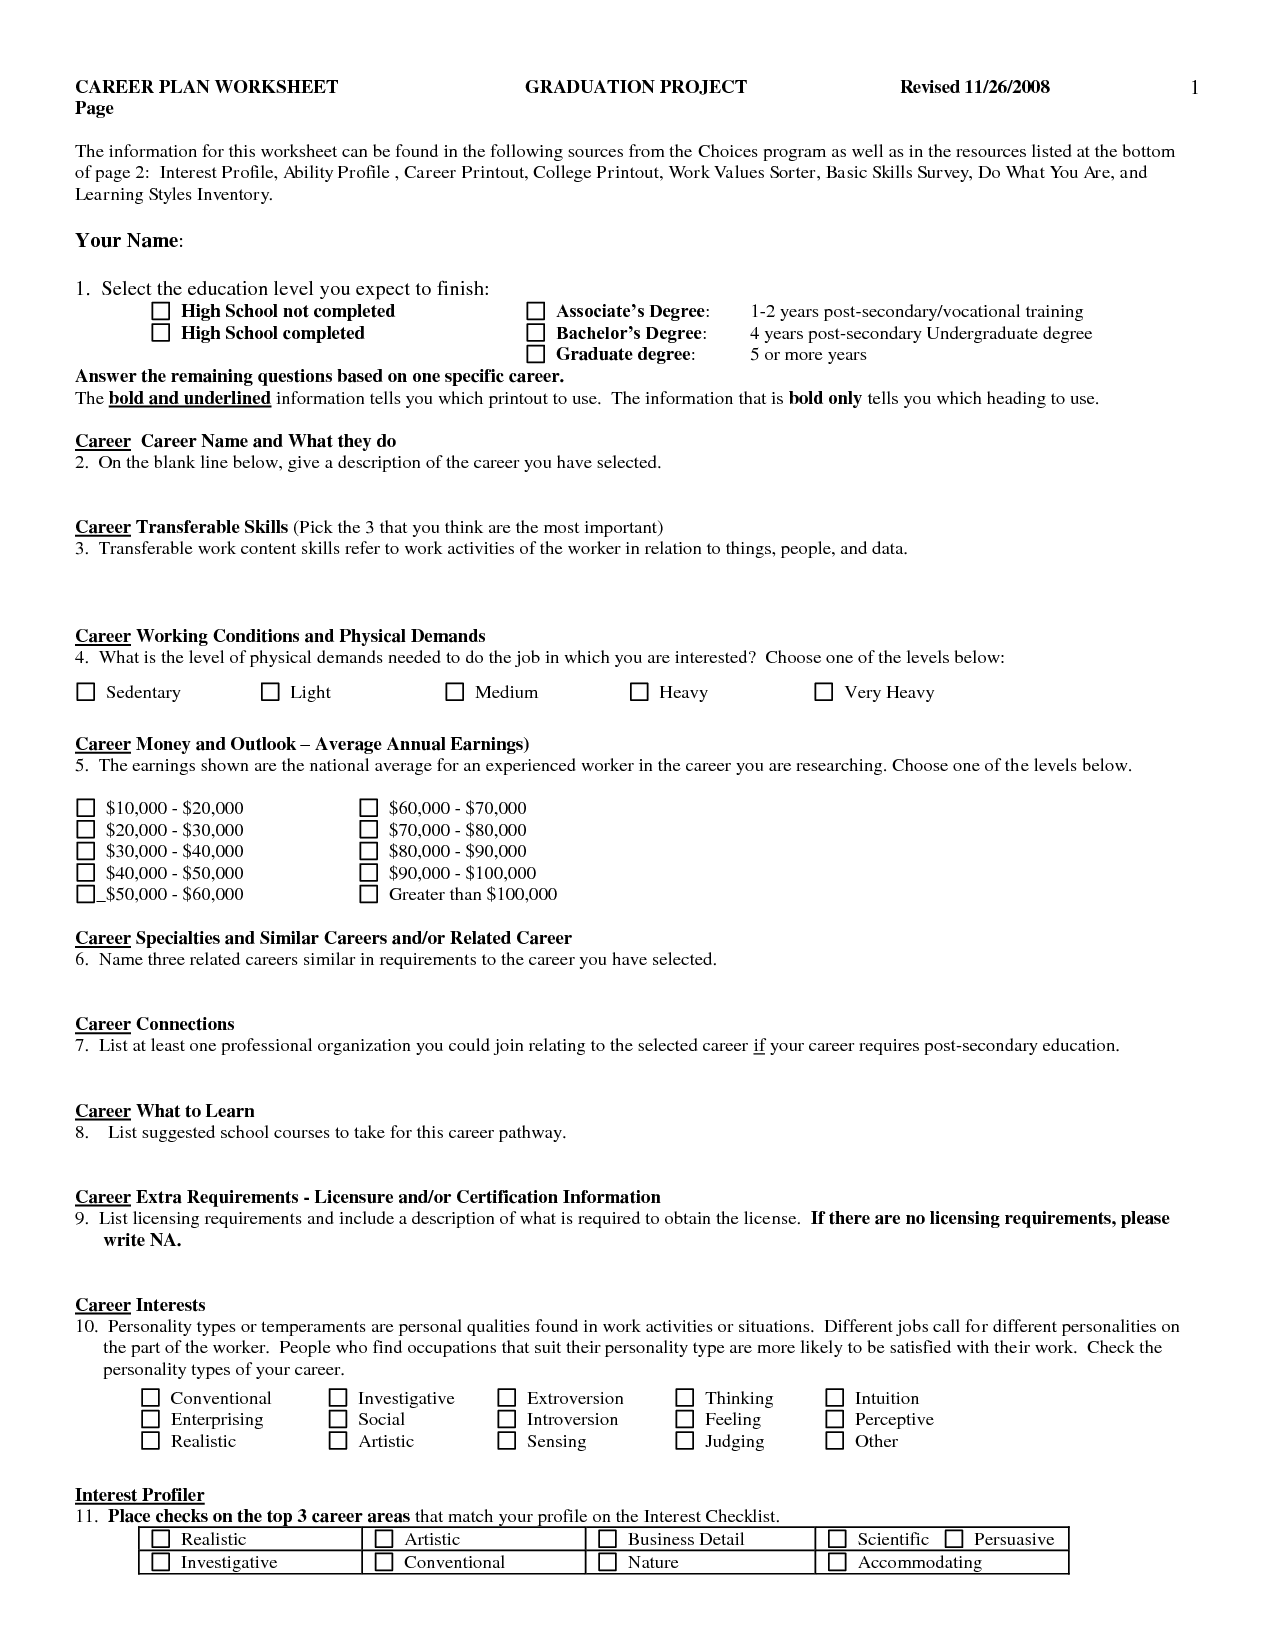 15 Best Images Of 5 Year Career Plan Worksheet